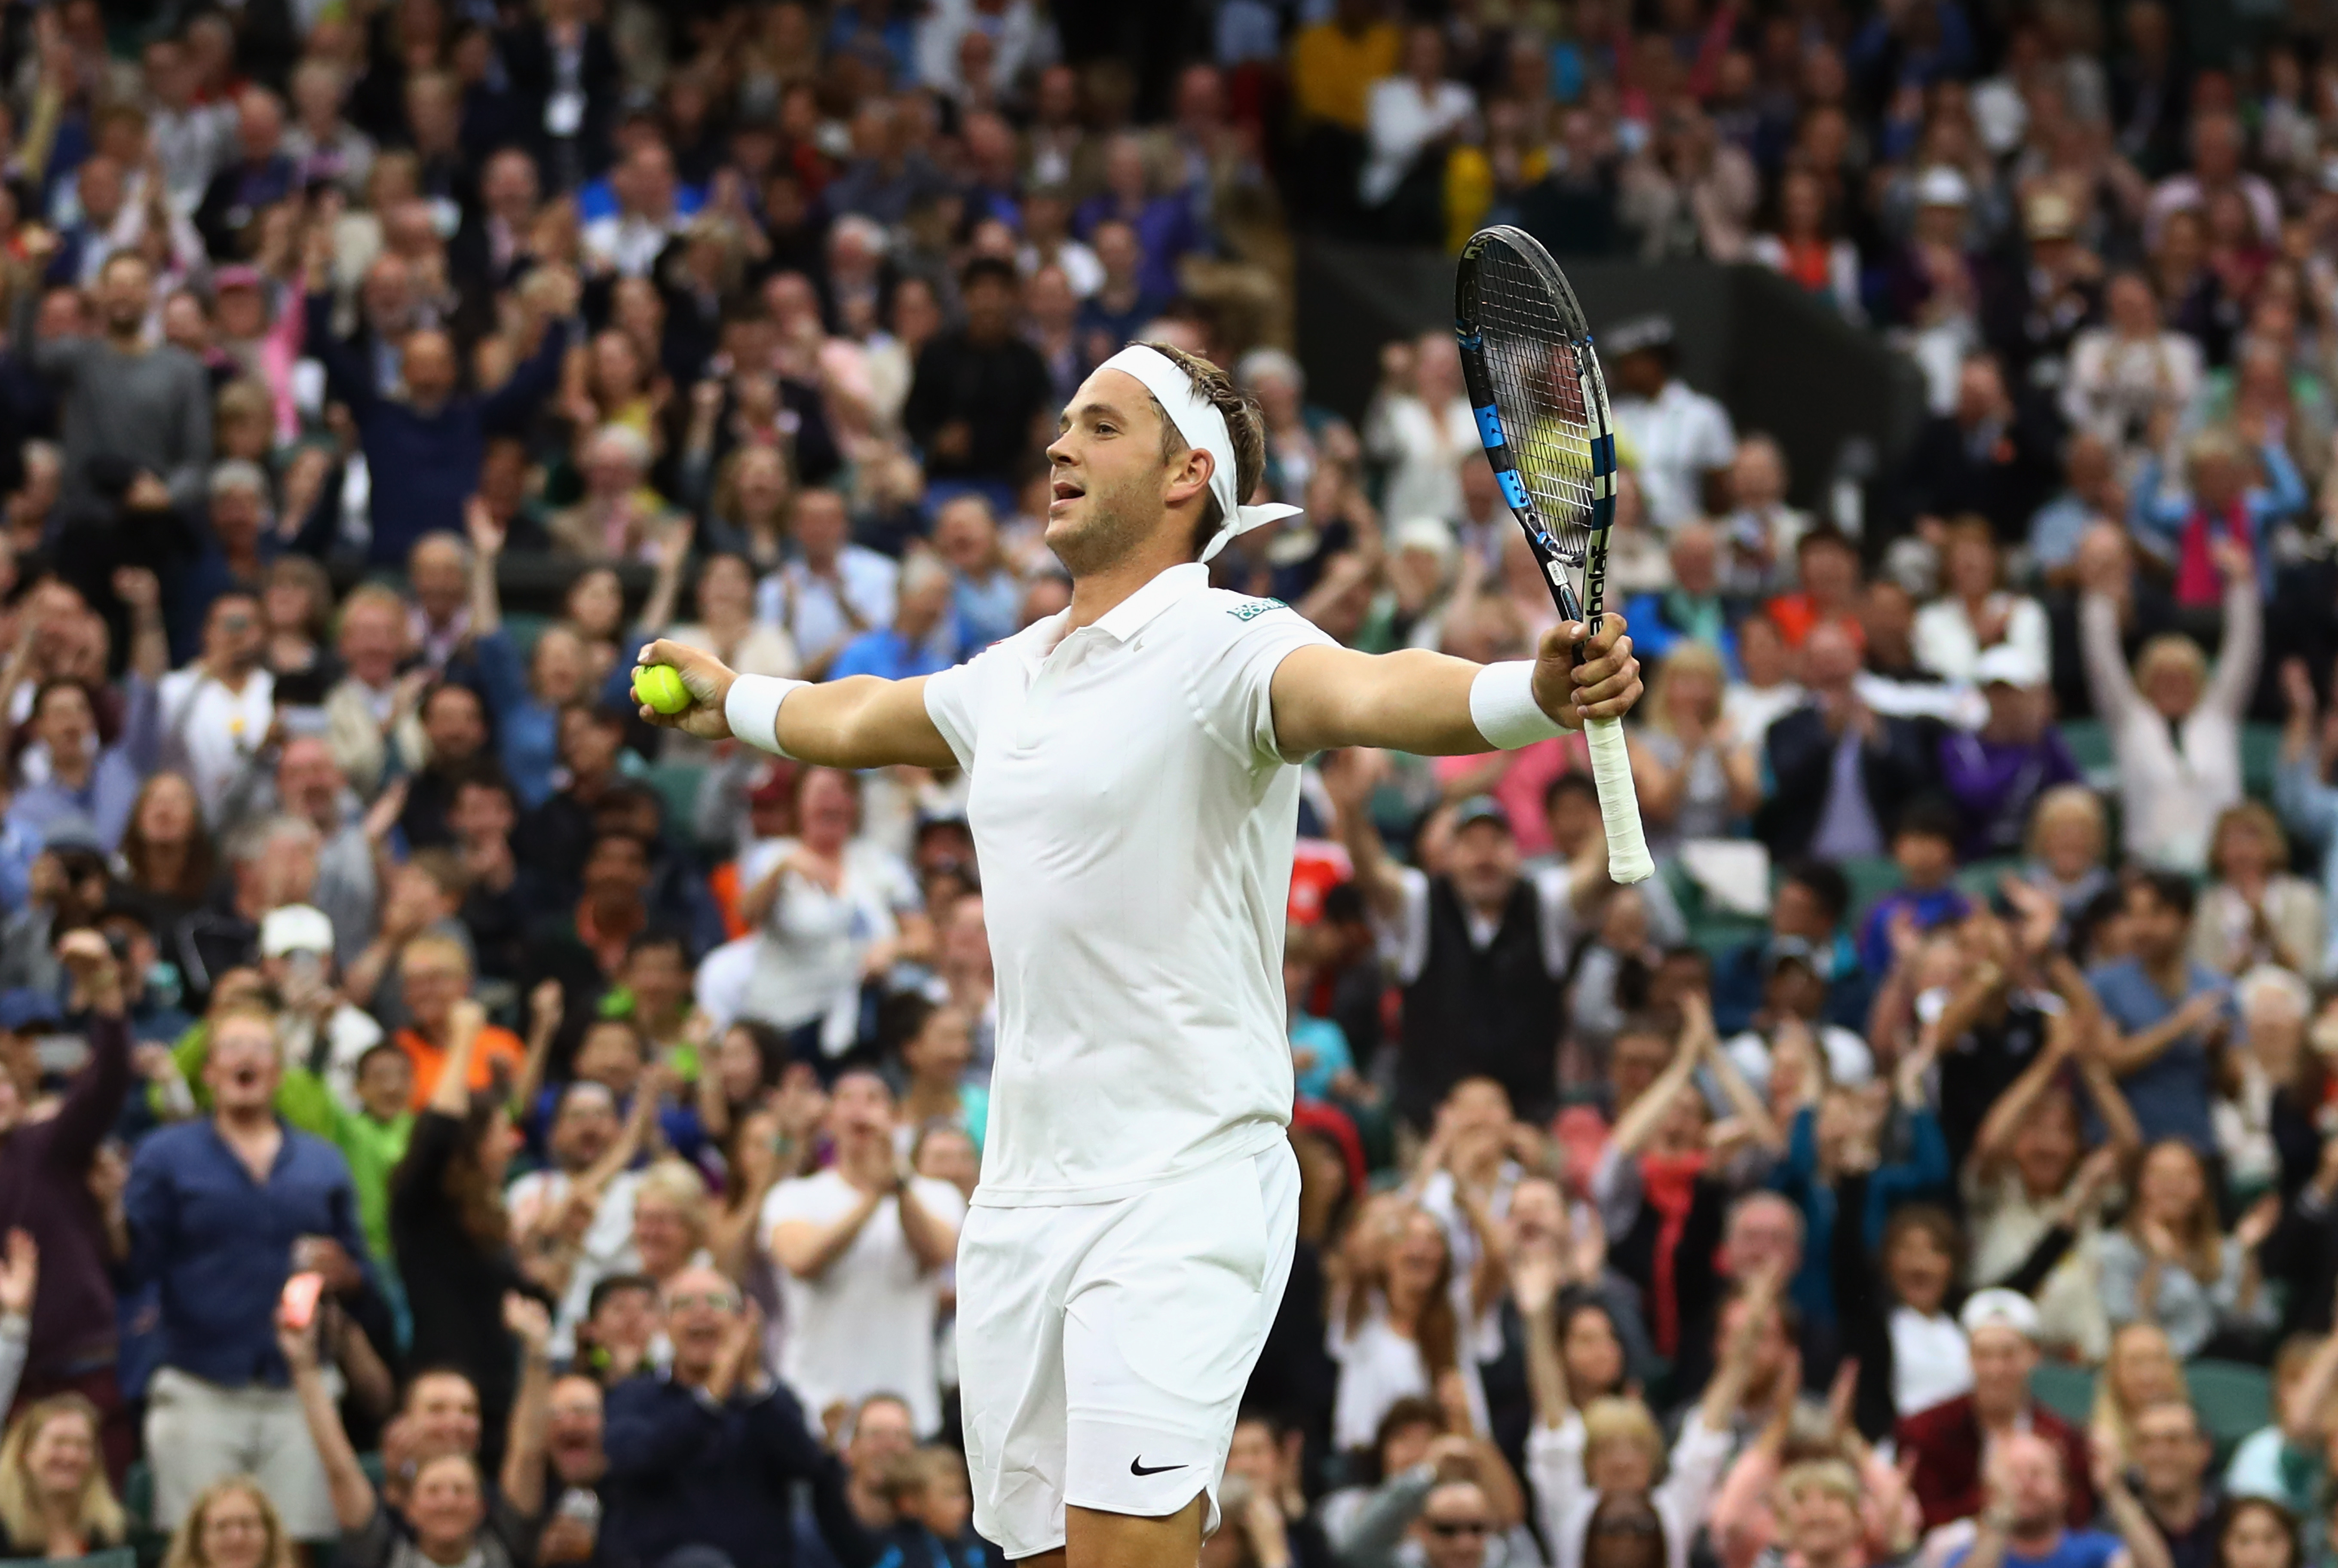 LONDON, ENGLAND - JUNE 29: Marcus Willis of Great Britain celebrates winnig a point during the Men's Singles second round match against Roger Federer of Switzerland on day three of the Wimbledon Lawn Tennis Championships at the All England Lawn Tennis and Croquet Club on June 29, 2016 in London, England. (Photo by Julian Finney/Getty Images)